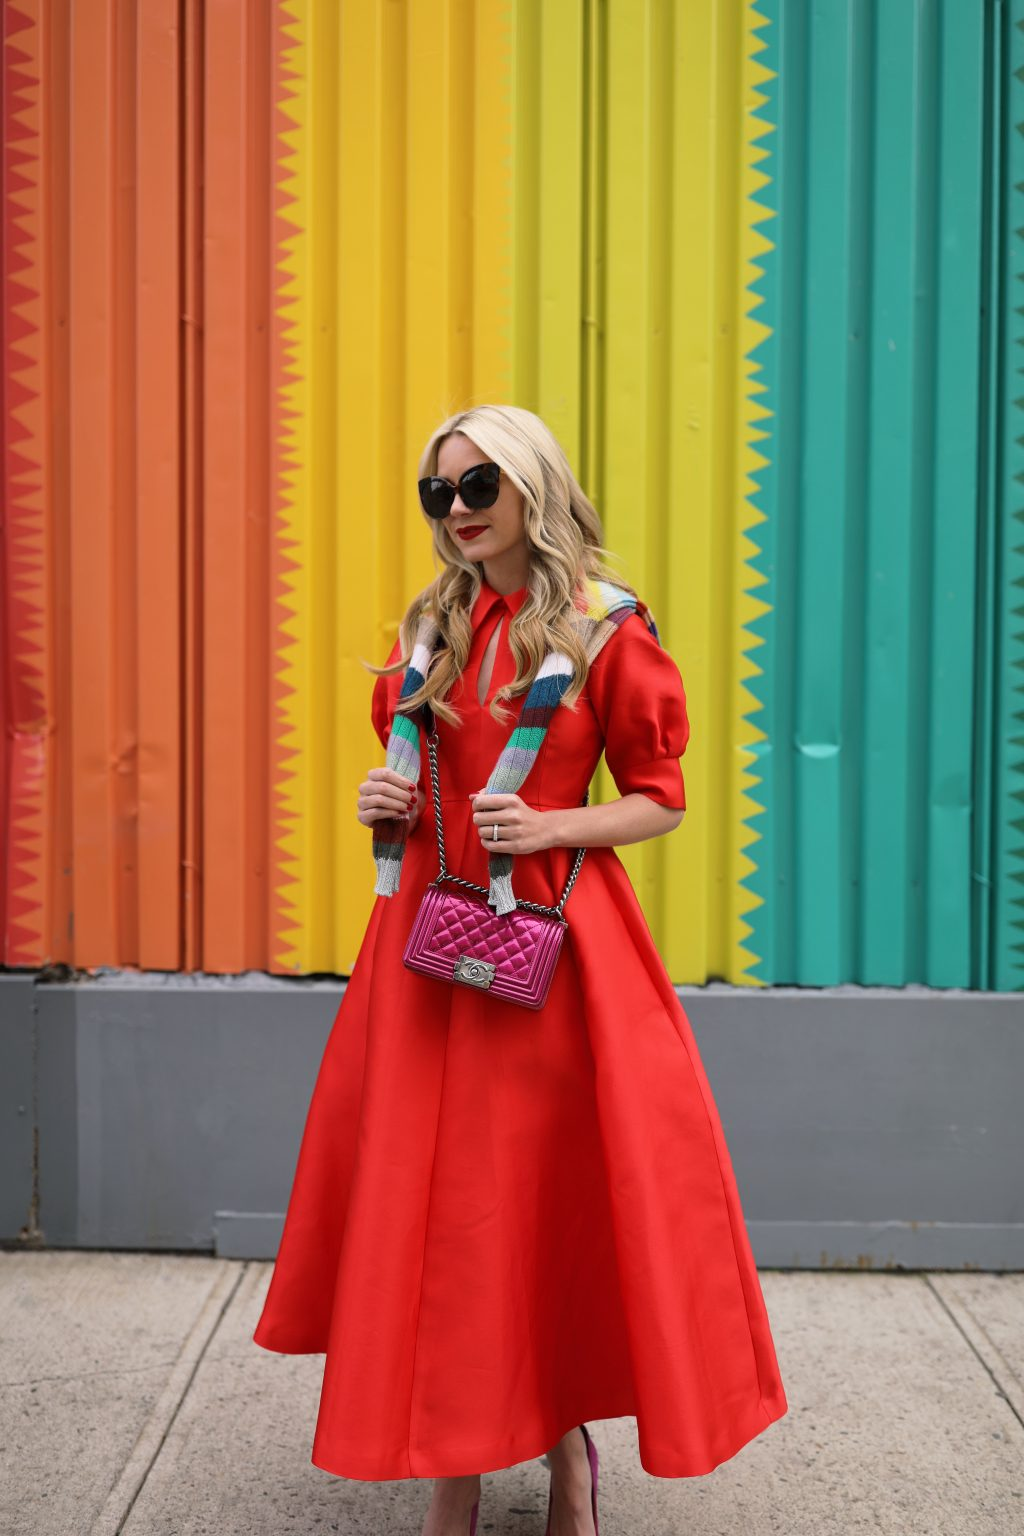 blair-eadie-red-dress-nyc-chanel